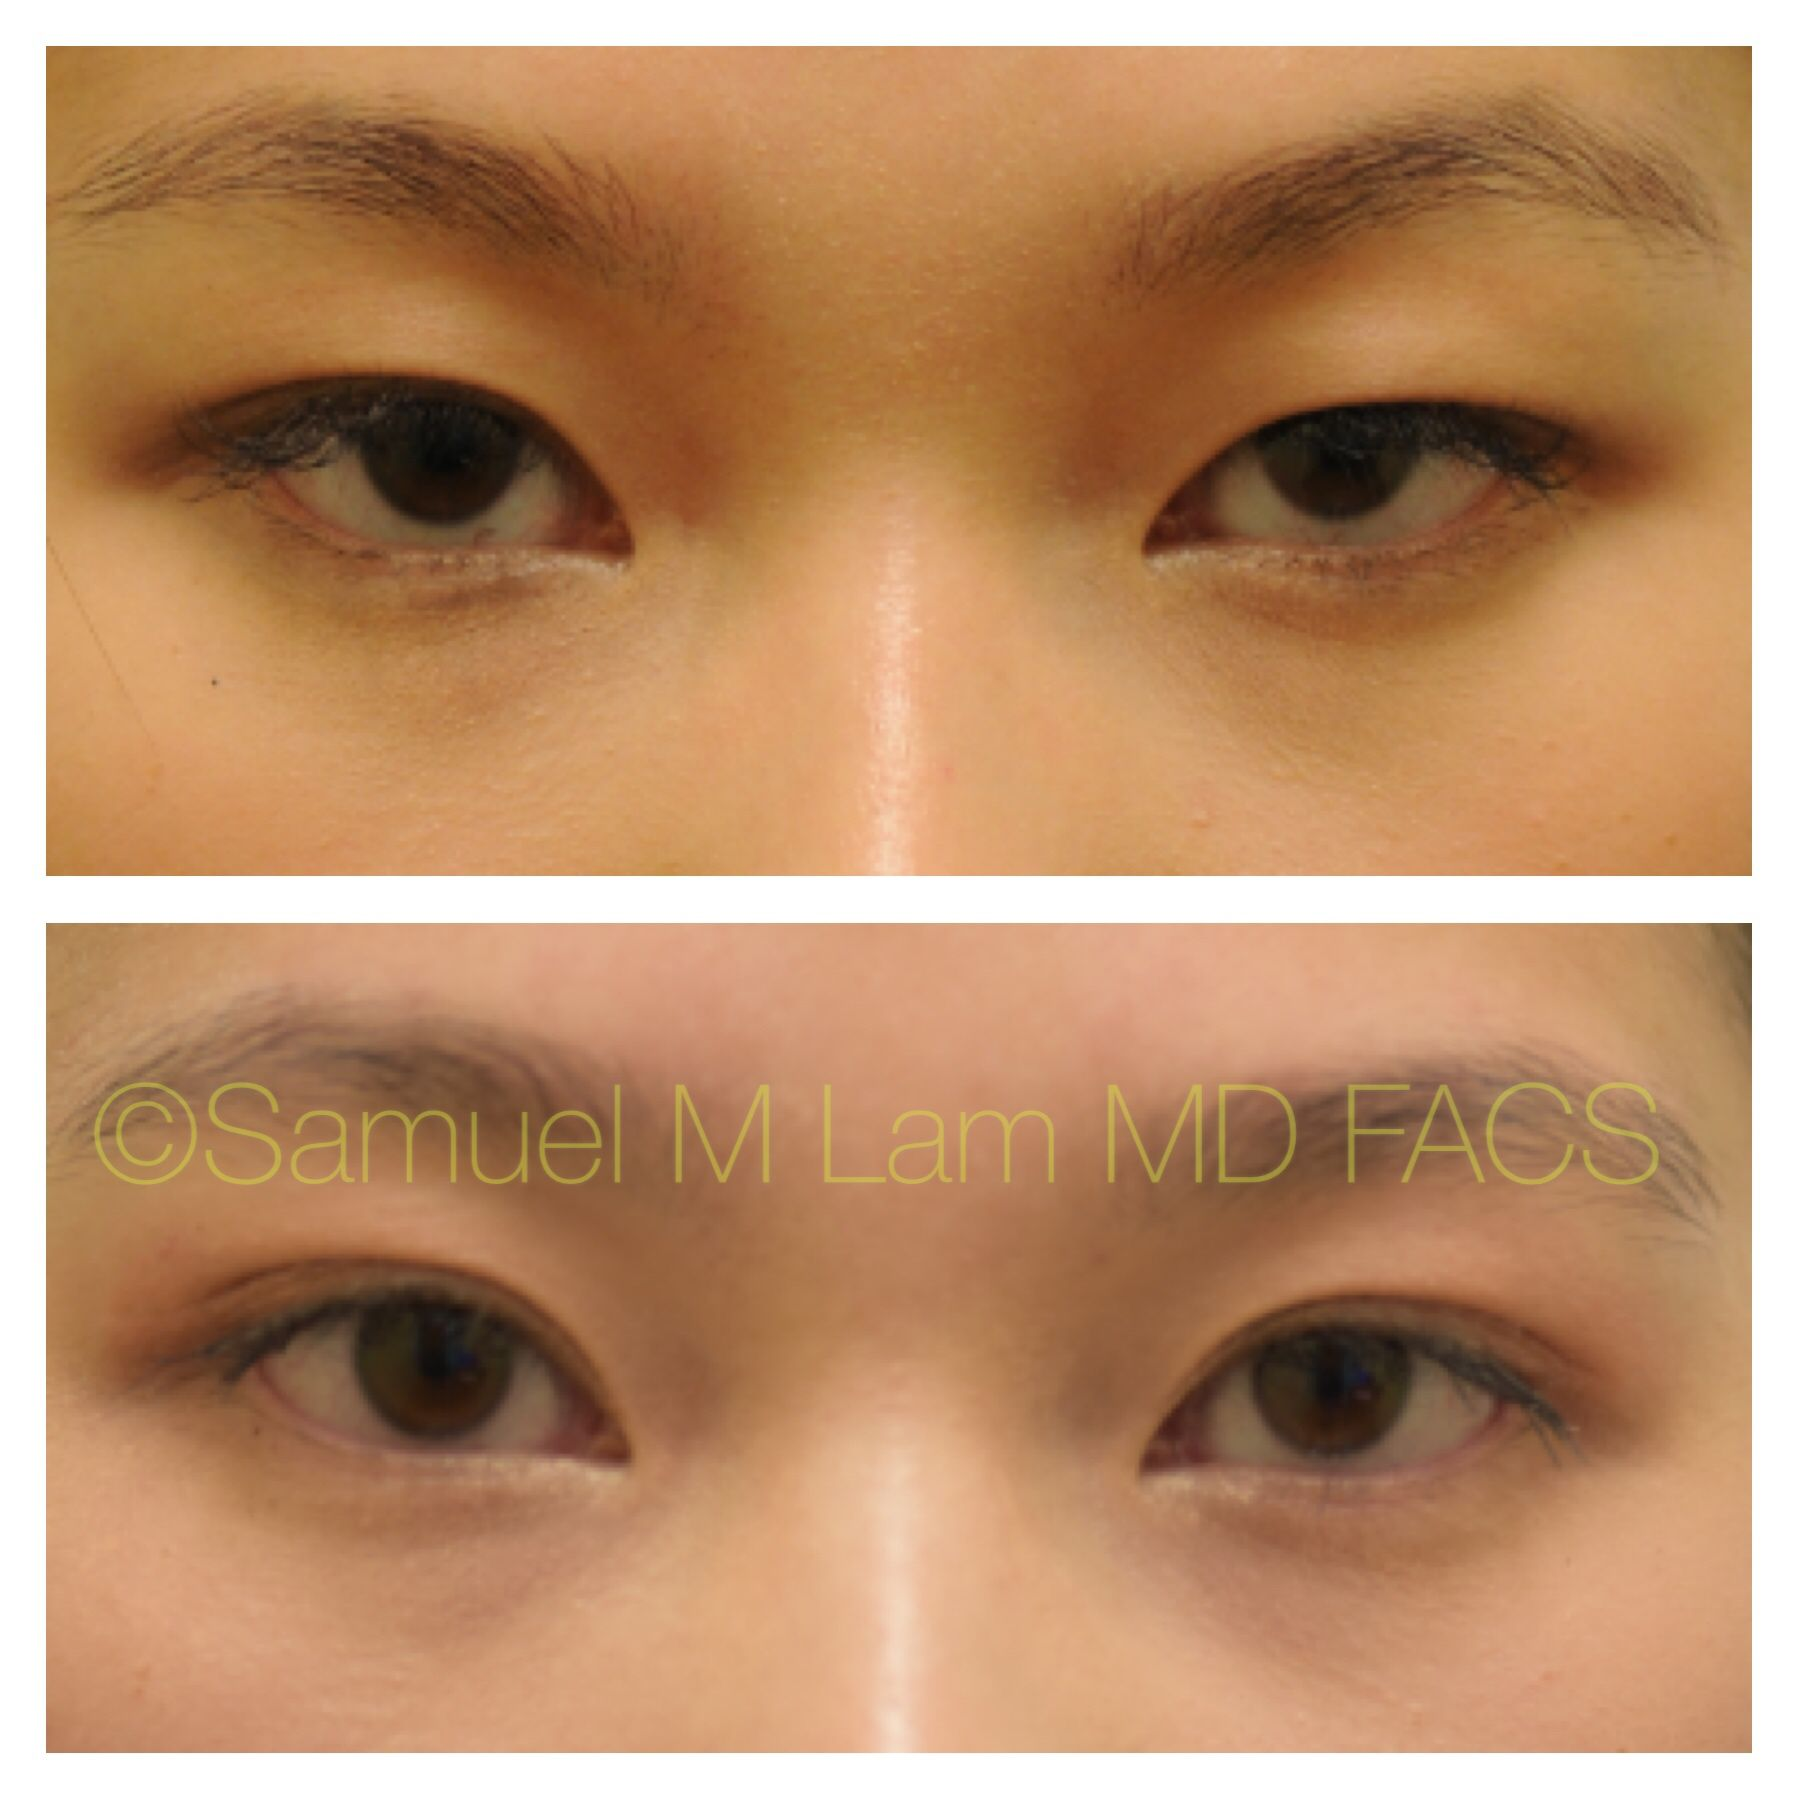 7426d06888db31b81a638d23efbe14eb - How To Get Rid Of Double Eyelids Without Surgery